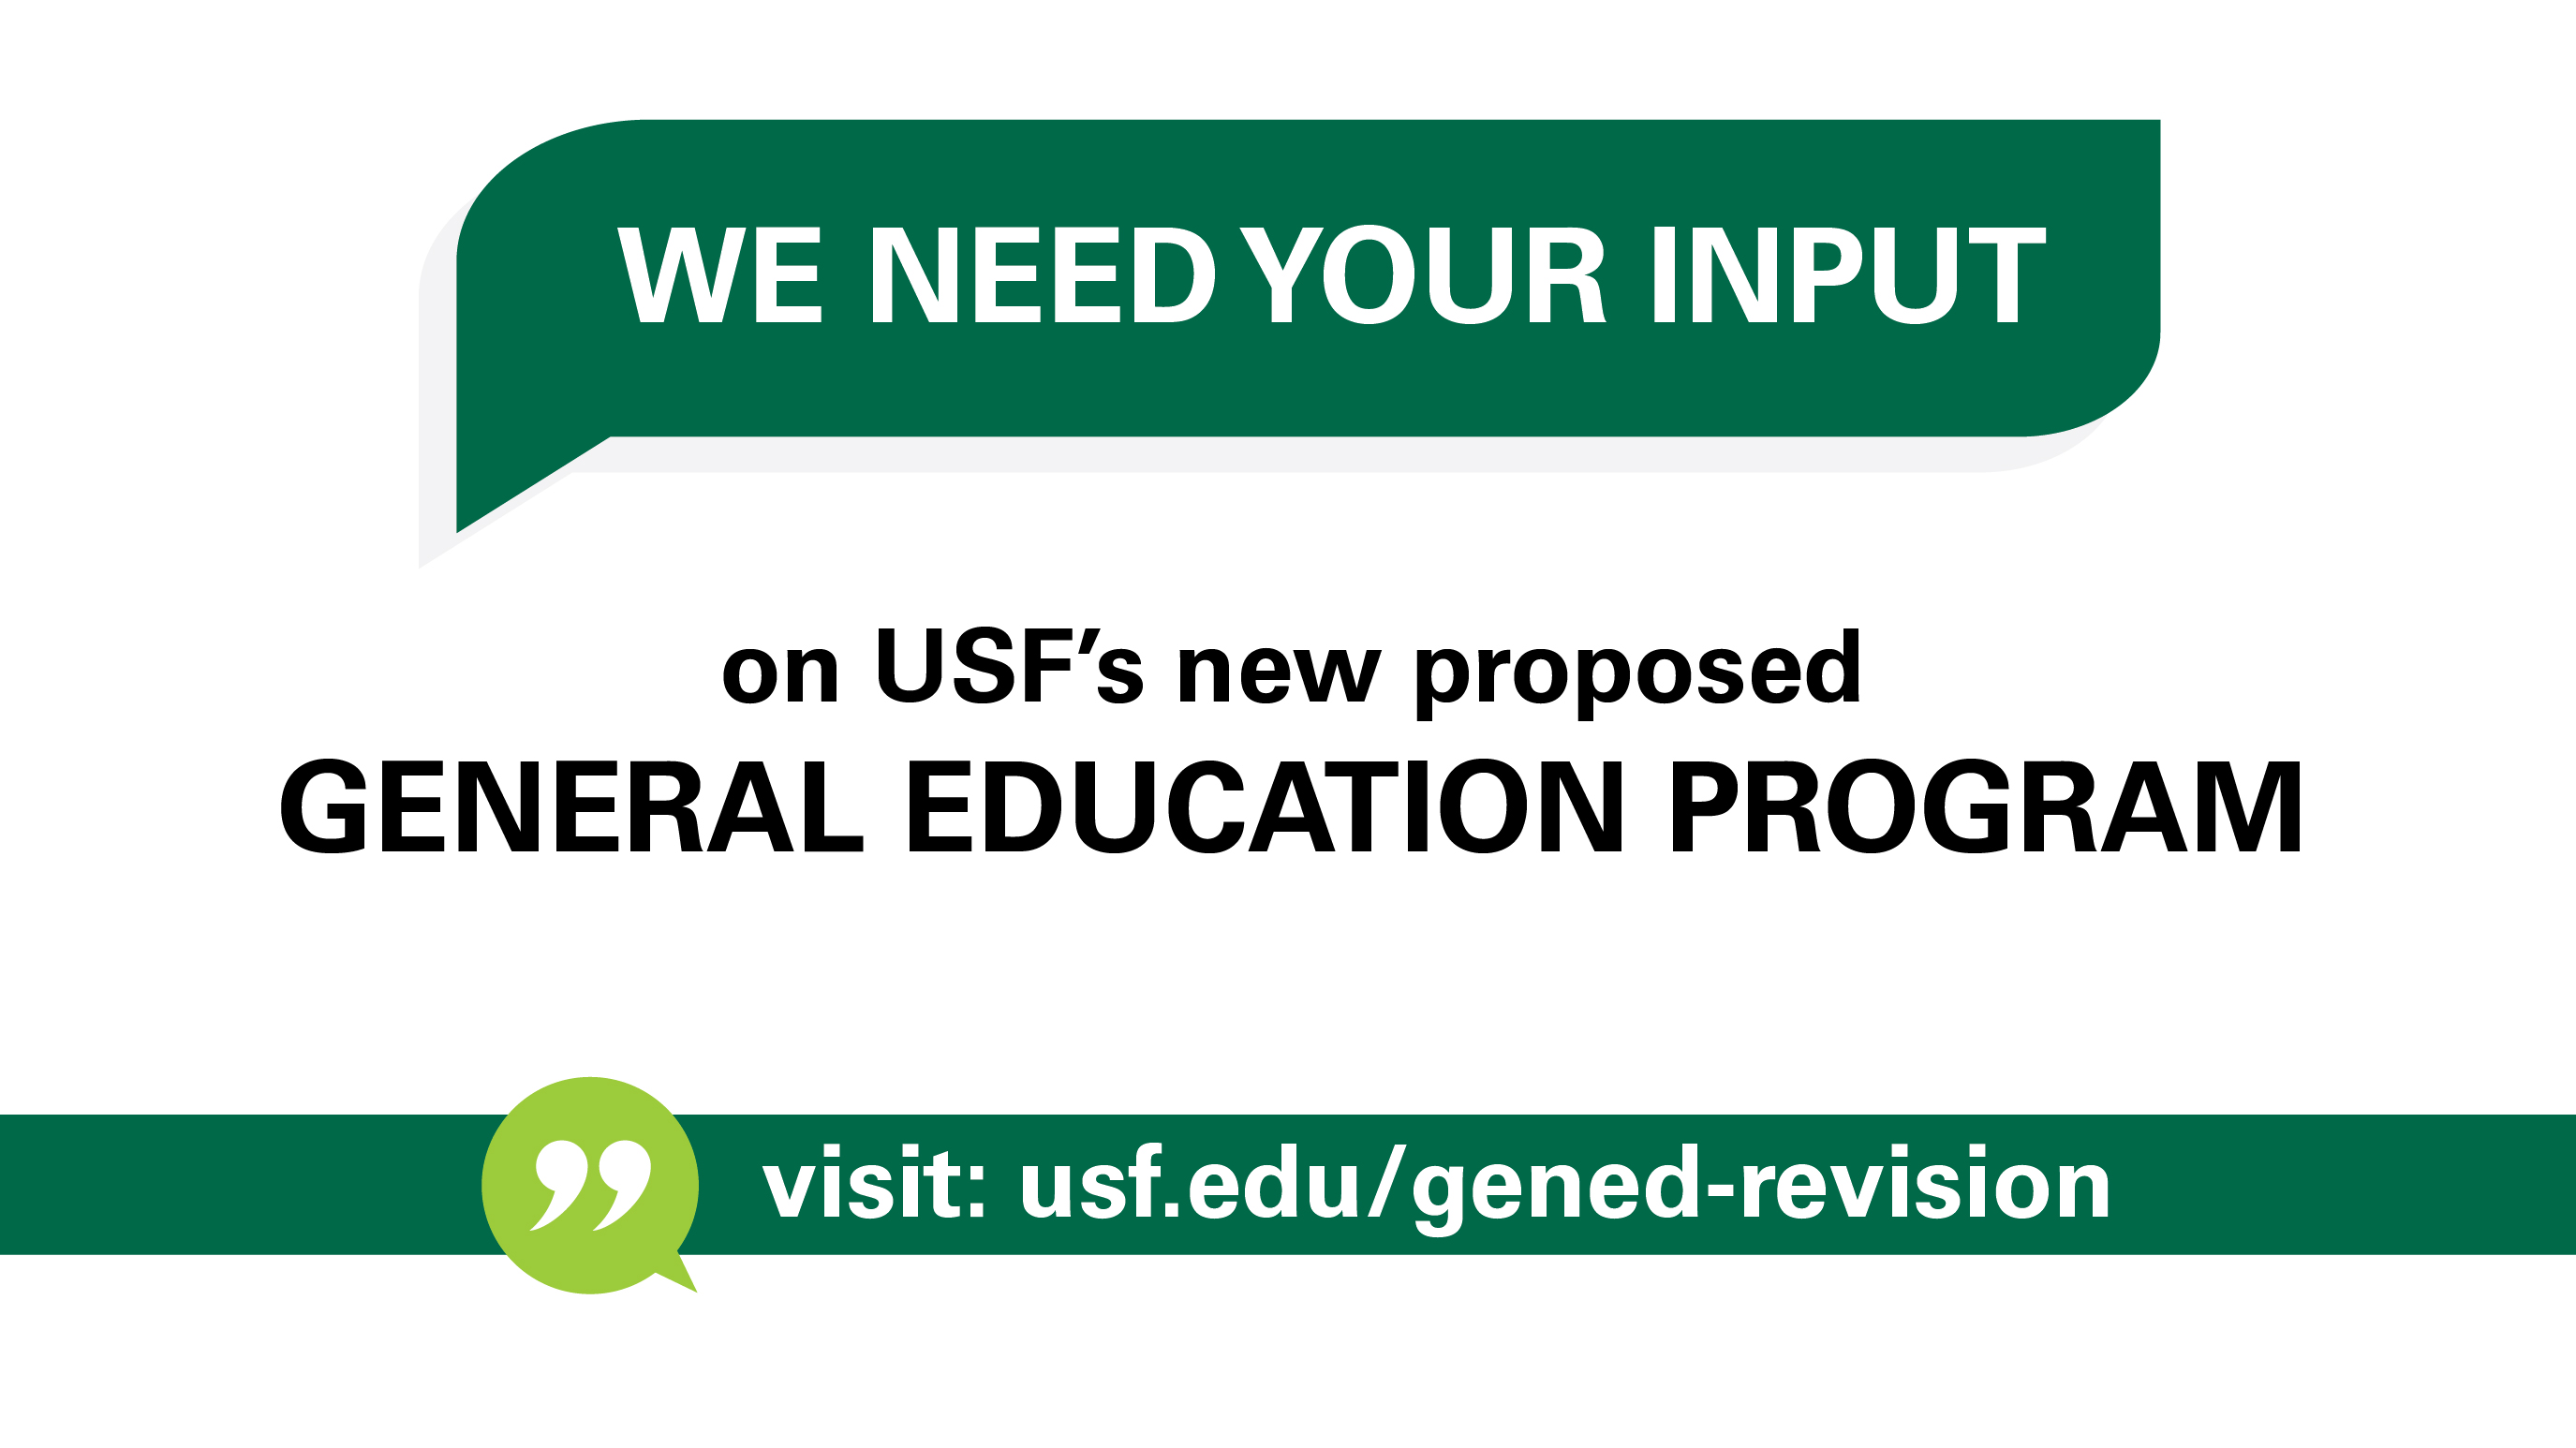 We need your input on USF's new proposed General Education Program!